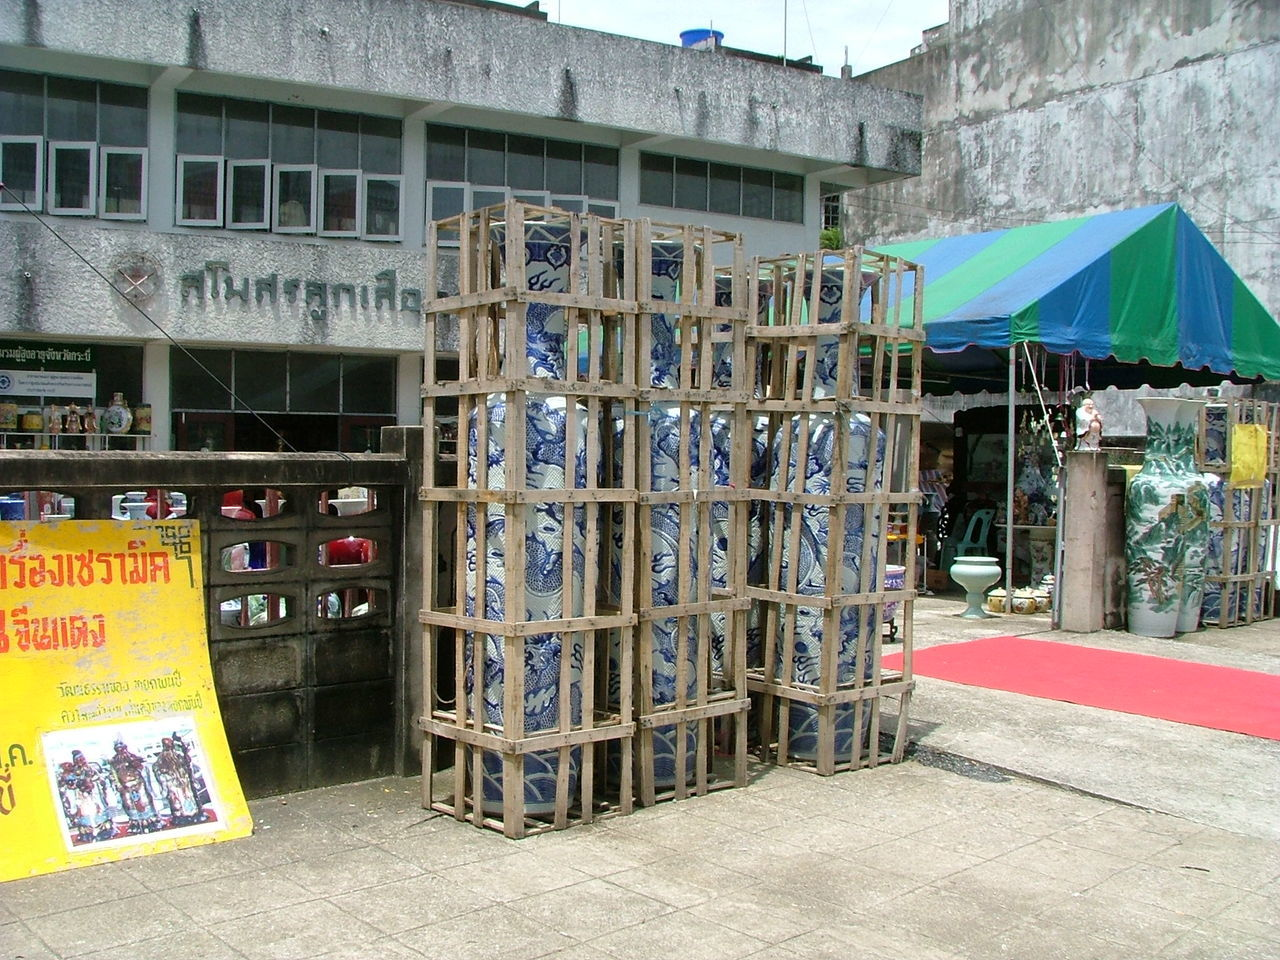 Architecture Asia. Building Exterior Communication Crates Market Multi Colored Outdoors Porcelain Vases In Crates. Porcelain Vases. Porcelain. Residential Building Shop Sidewalk Street Text Window Wooden Wooden Crates.